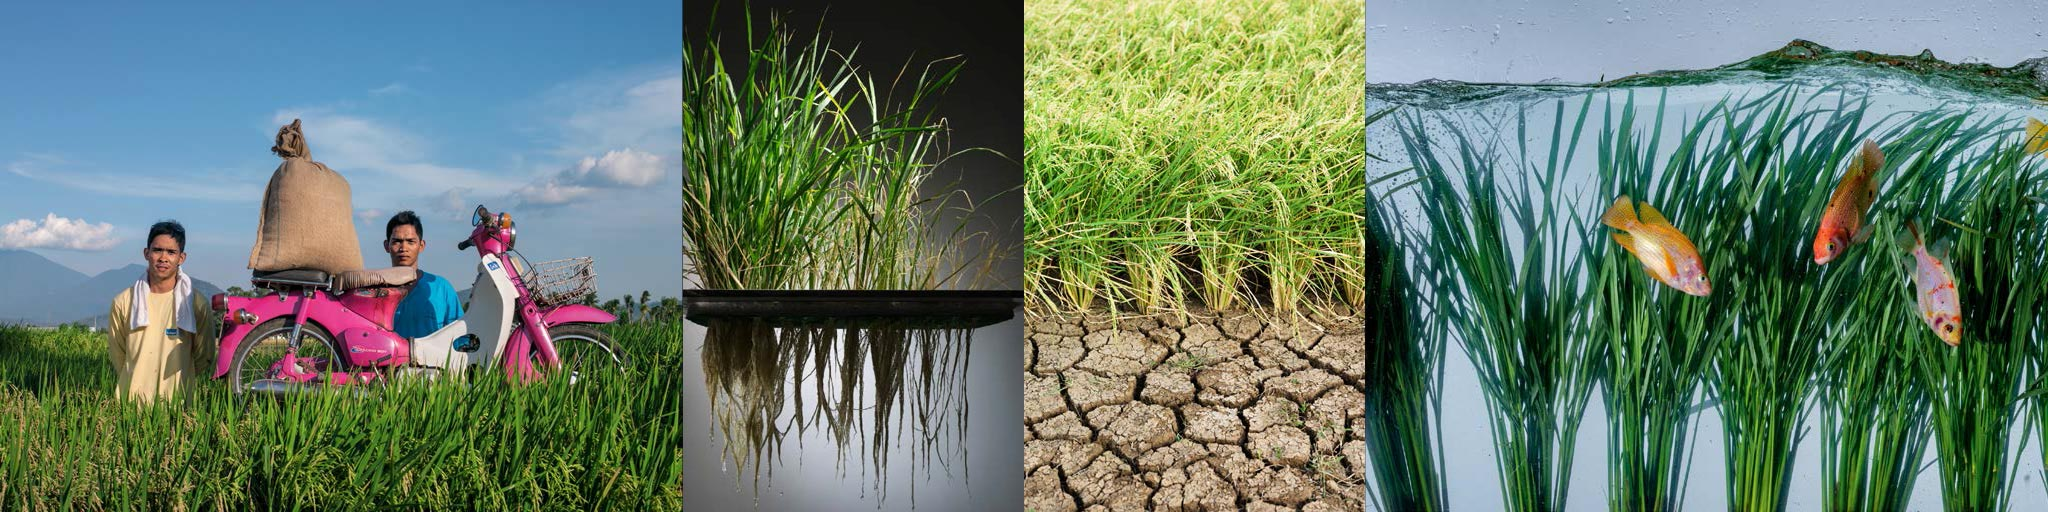 green revolution agricultural production revolution essay Green revolution refers essay on green revolution in 1966-67 the new agricultural policy emphasised the short- term accelerated agricultural production.